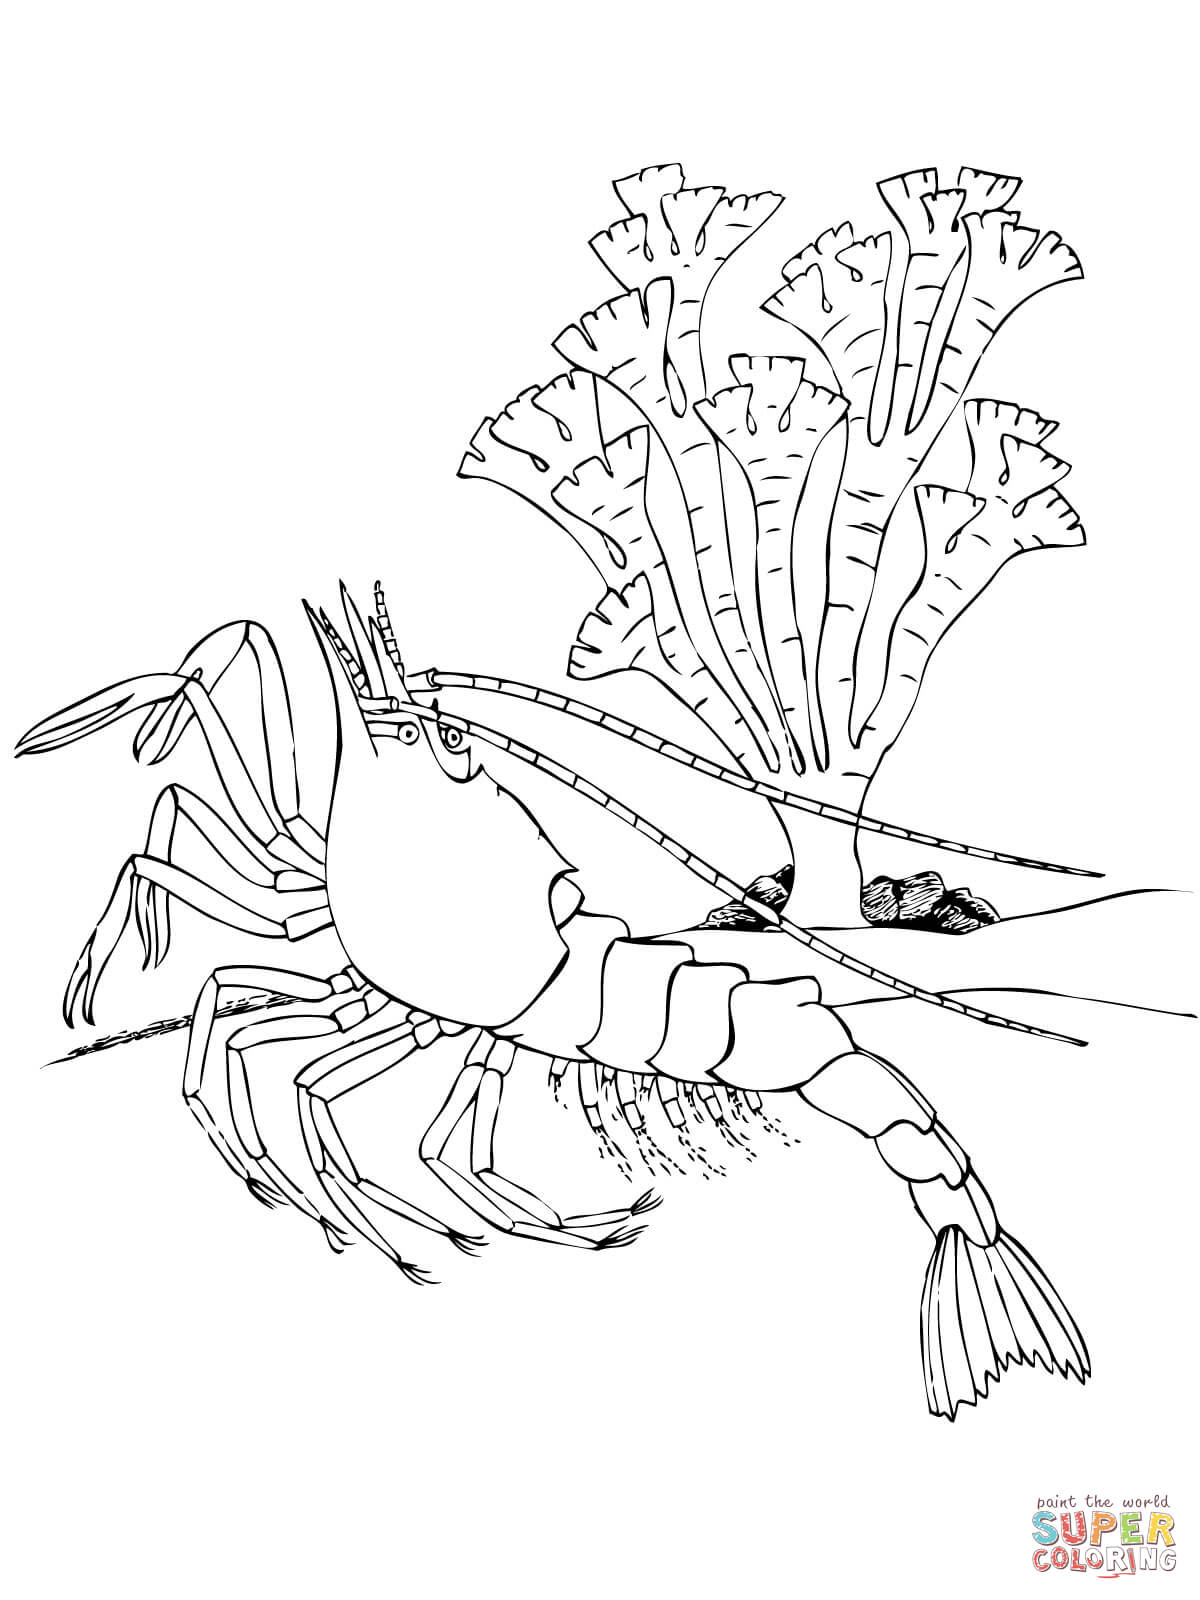 Crustacean coloring #2, Download drawings